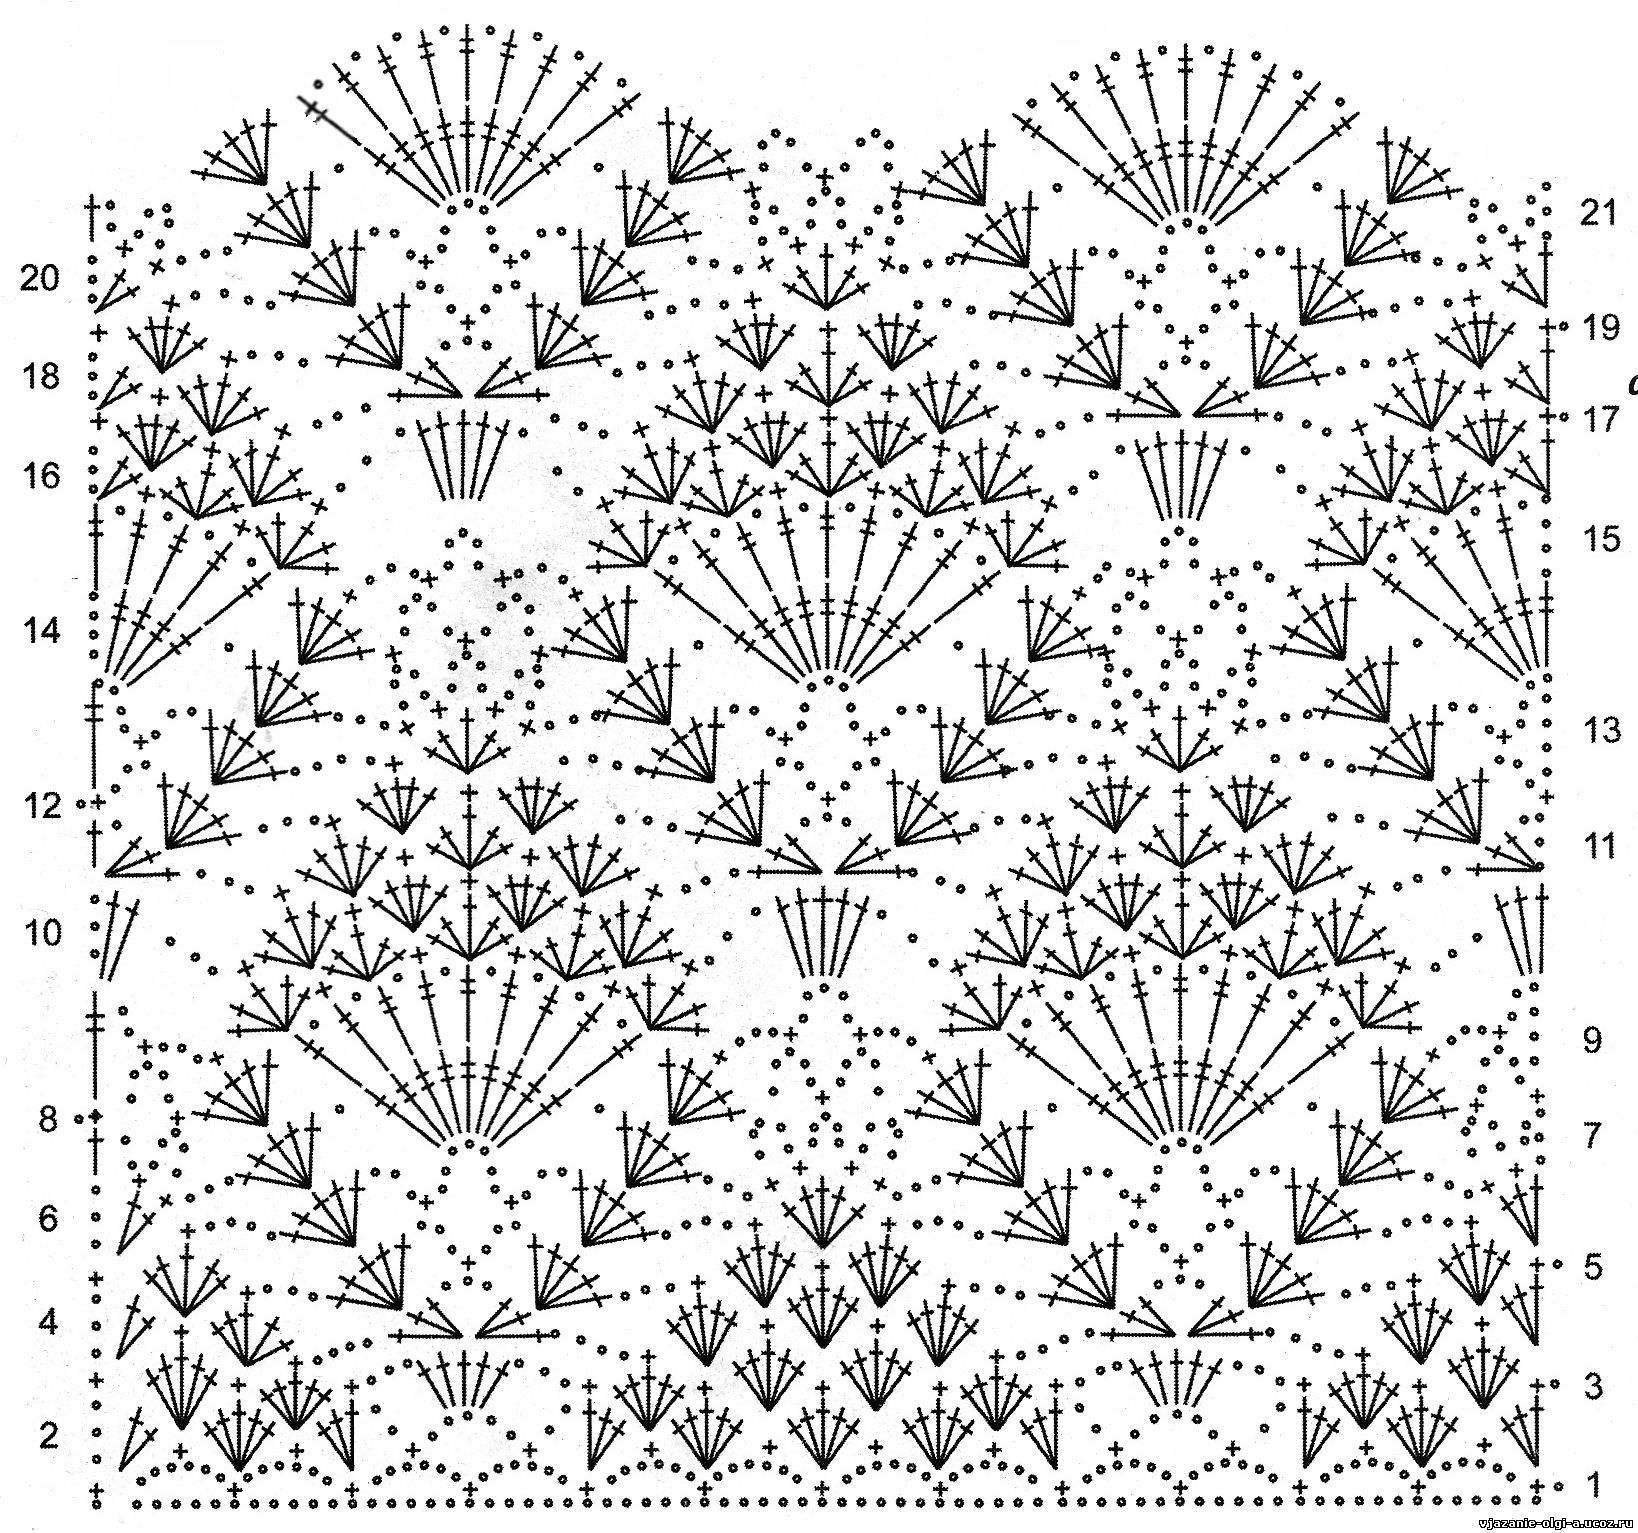 Pin by Atelier Tausendschön on Häkelmuster / Crochet Pattern ...